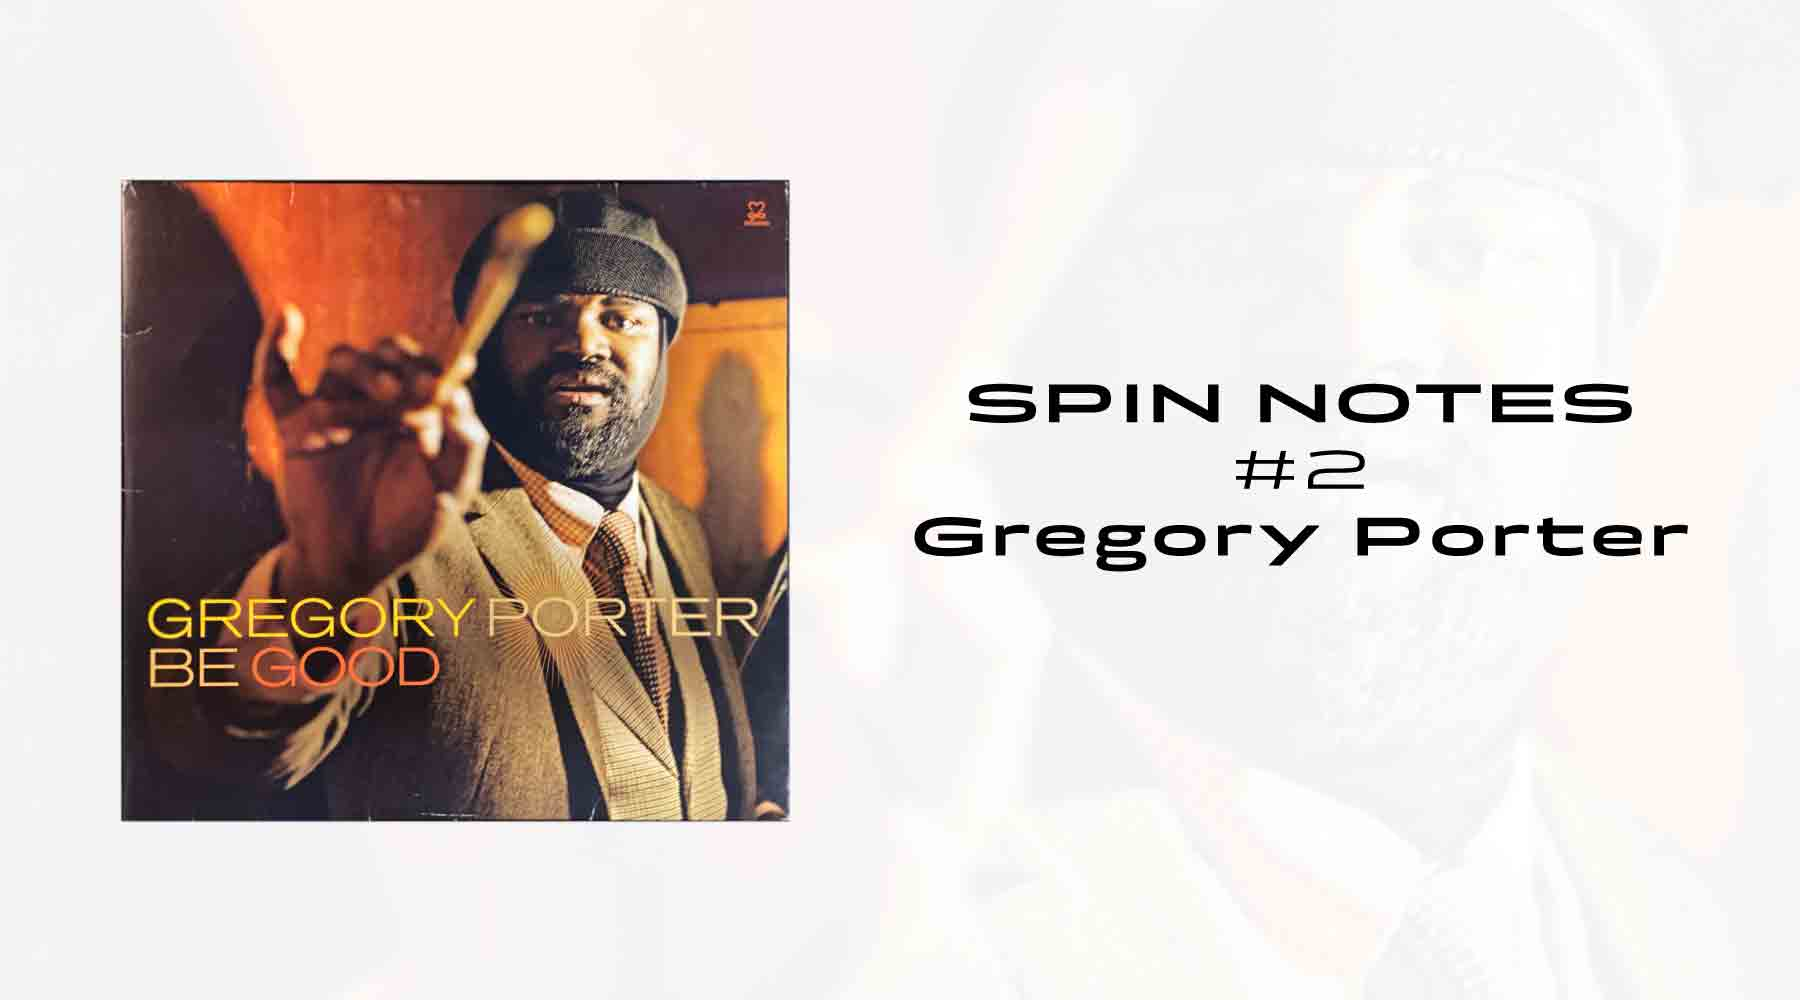 Spin Notes #2 - Gregory Porter